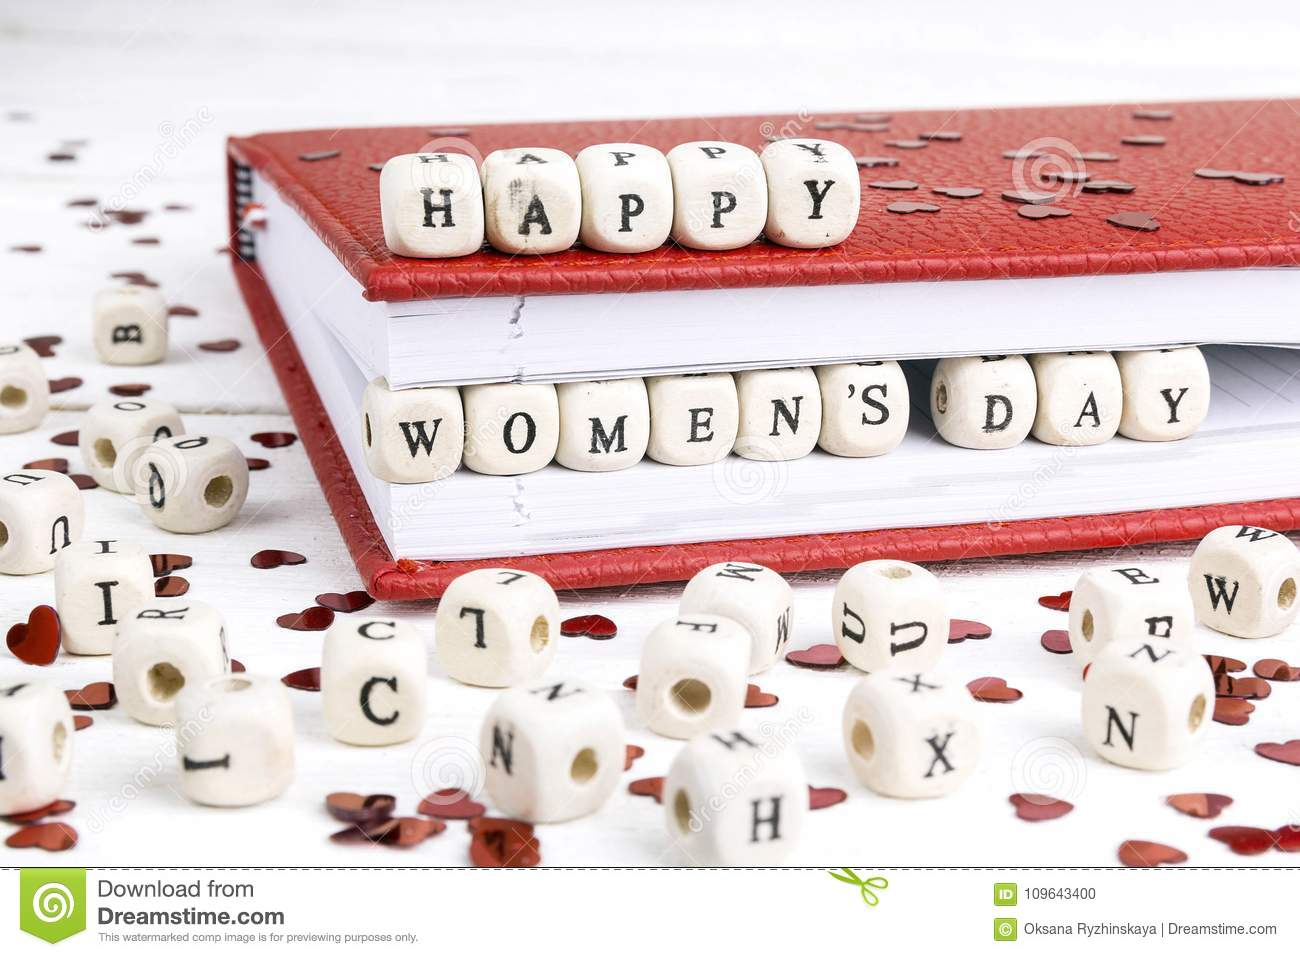 Women`s Day greeting message written in wooden blocks in red not